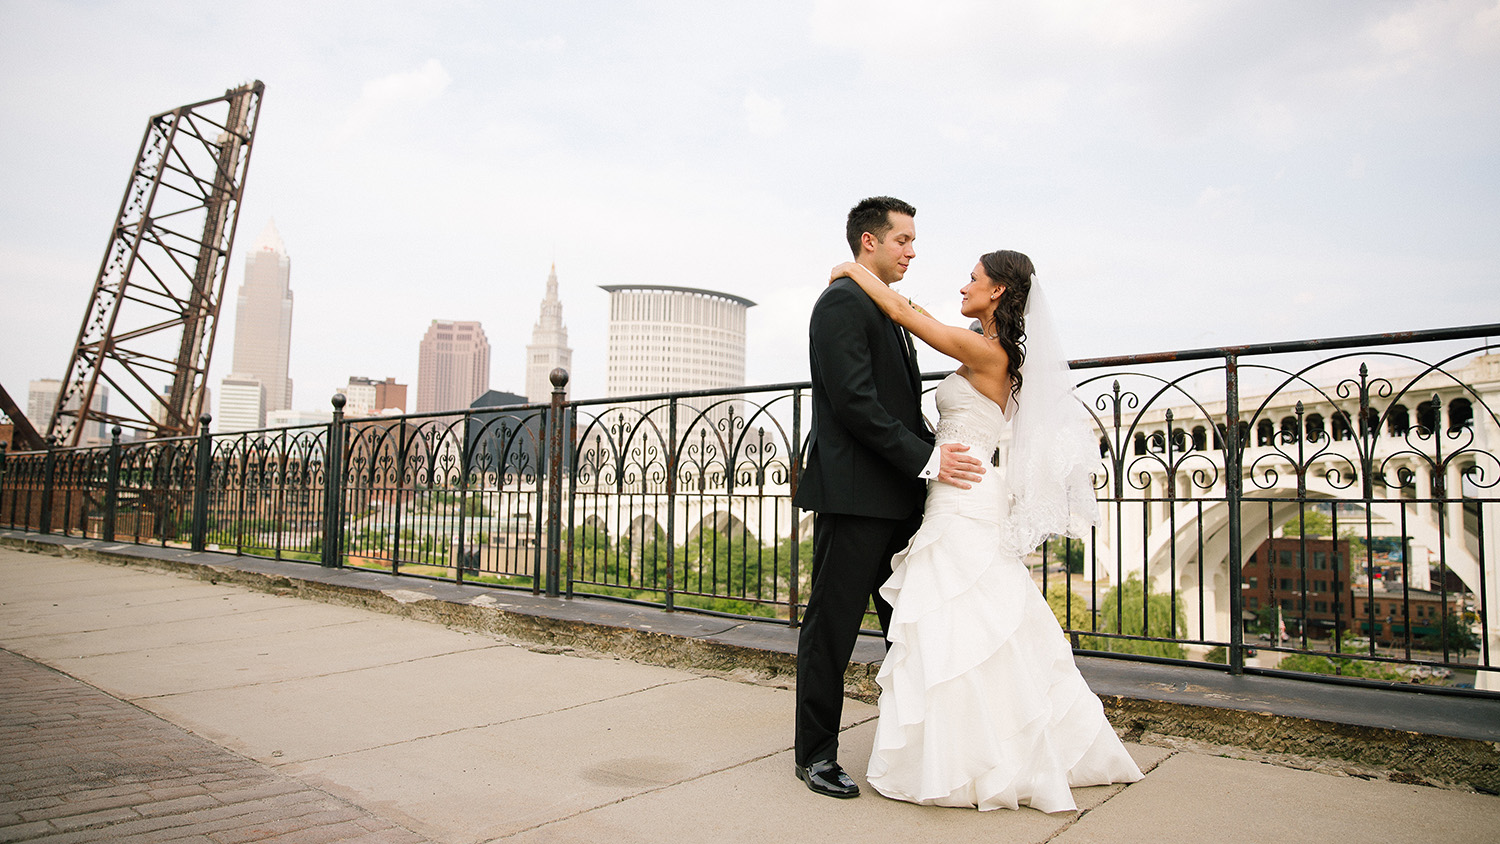 Cleveland Wedding Photographer - Windows on the River - Mere and Joe - too much awesomeness